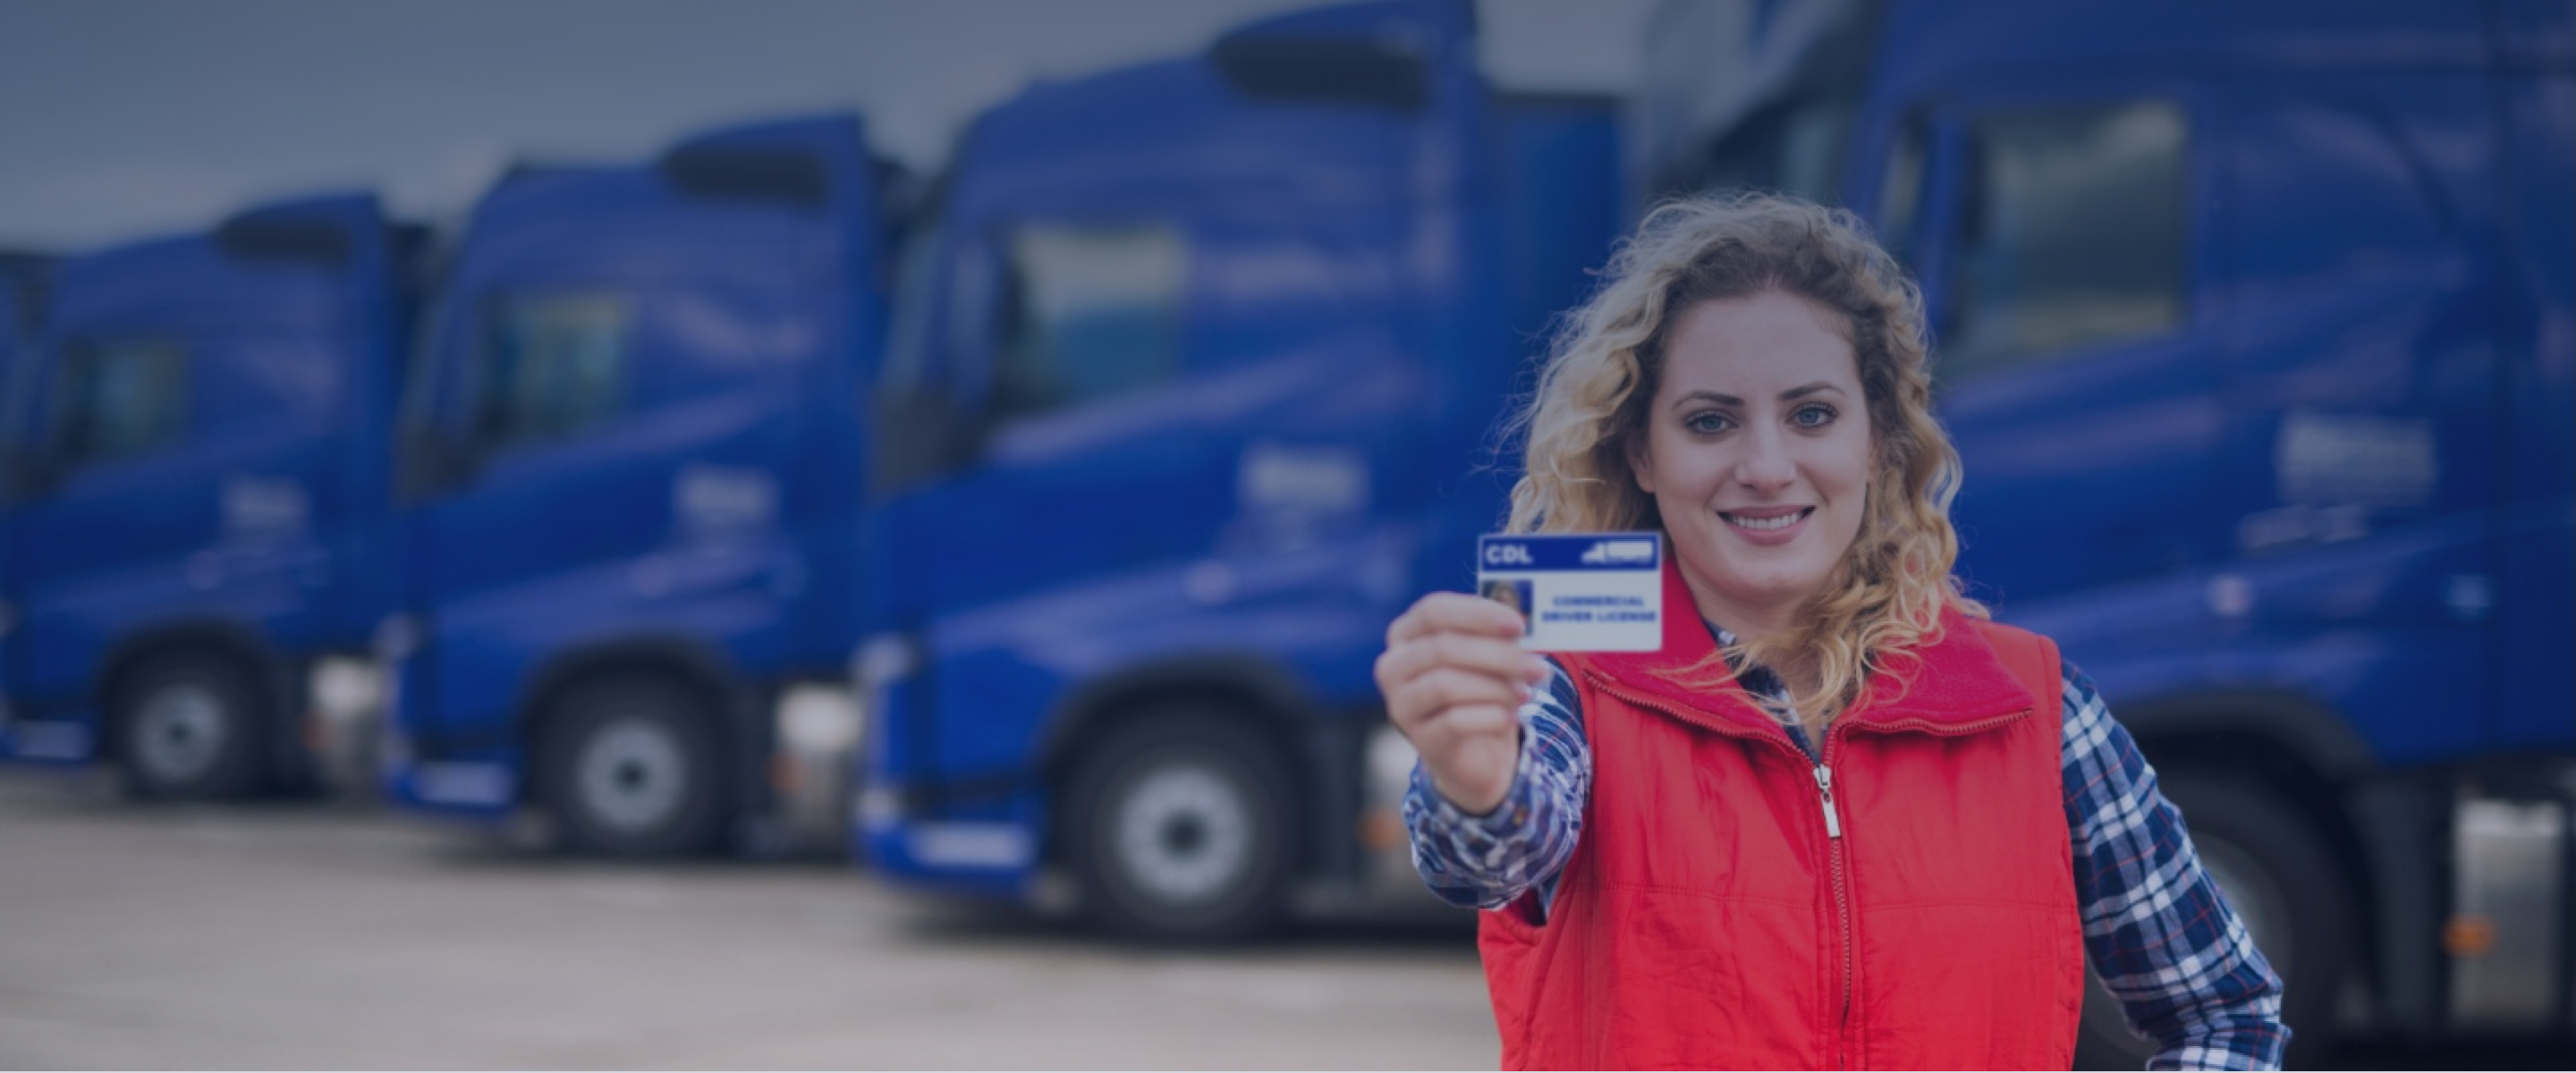 Hire New CDL Drivers